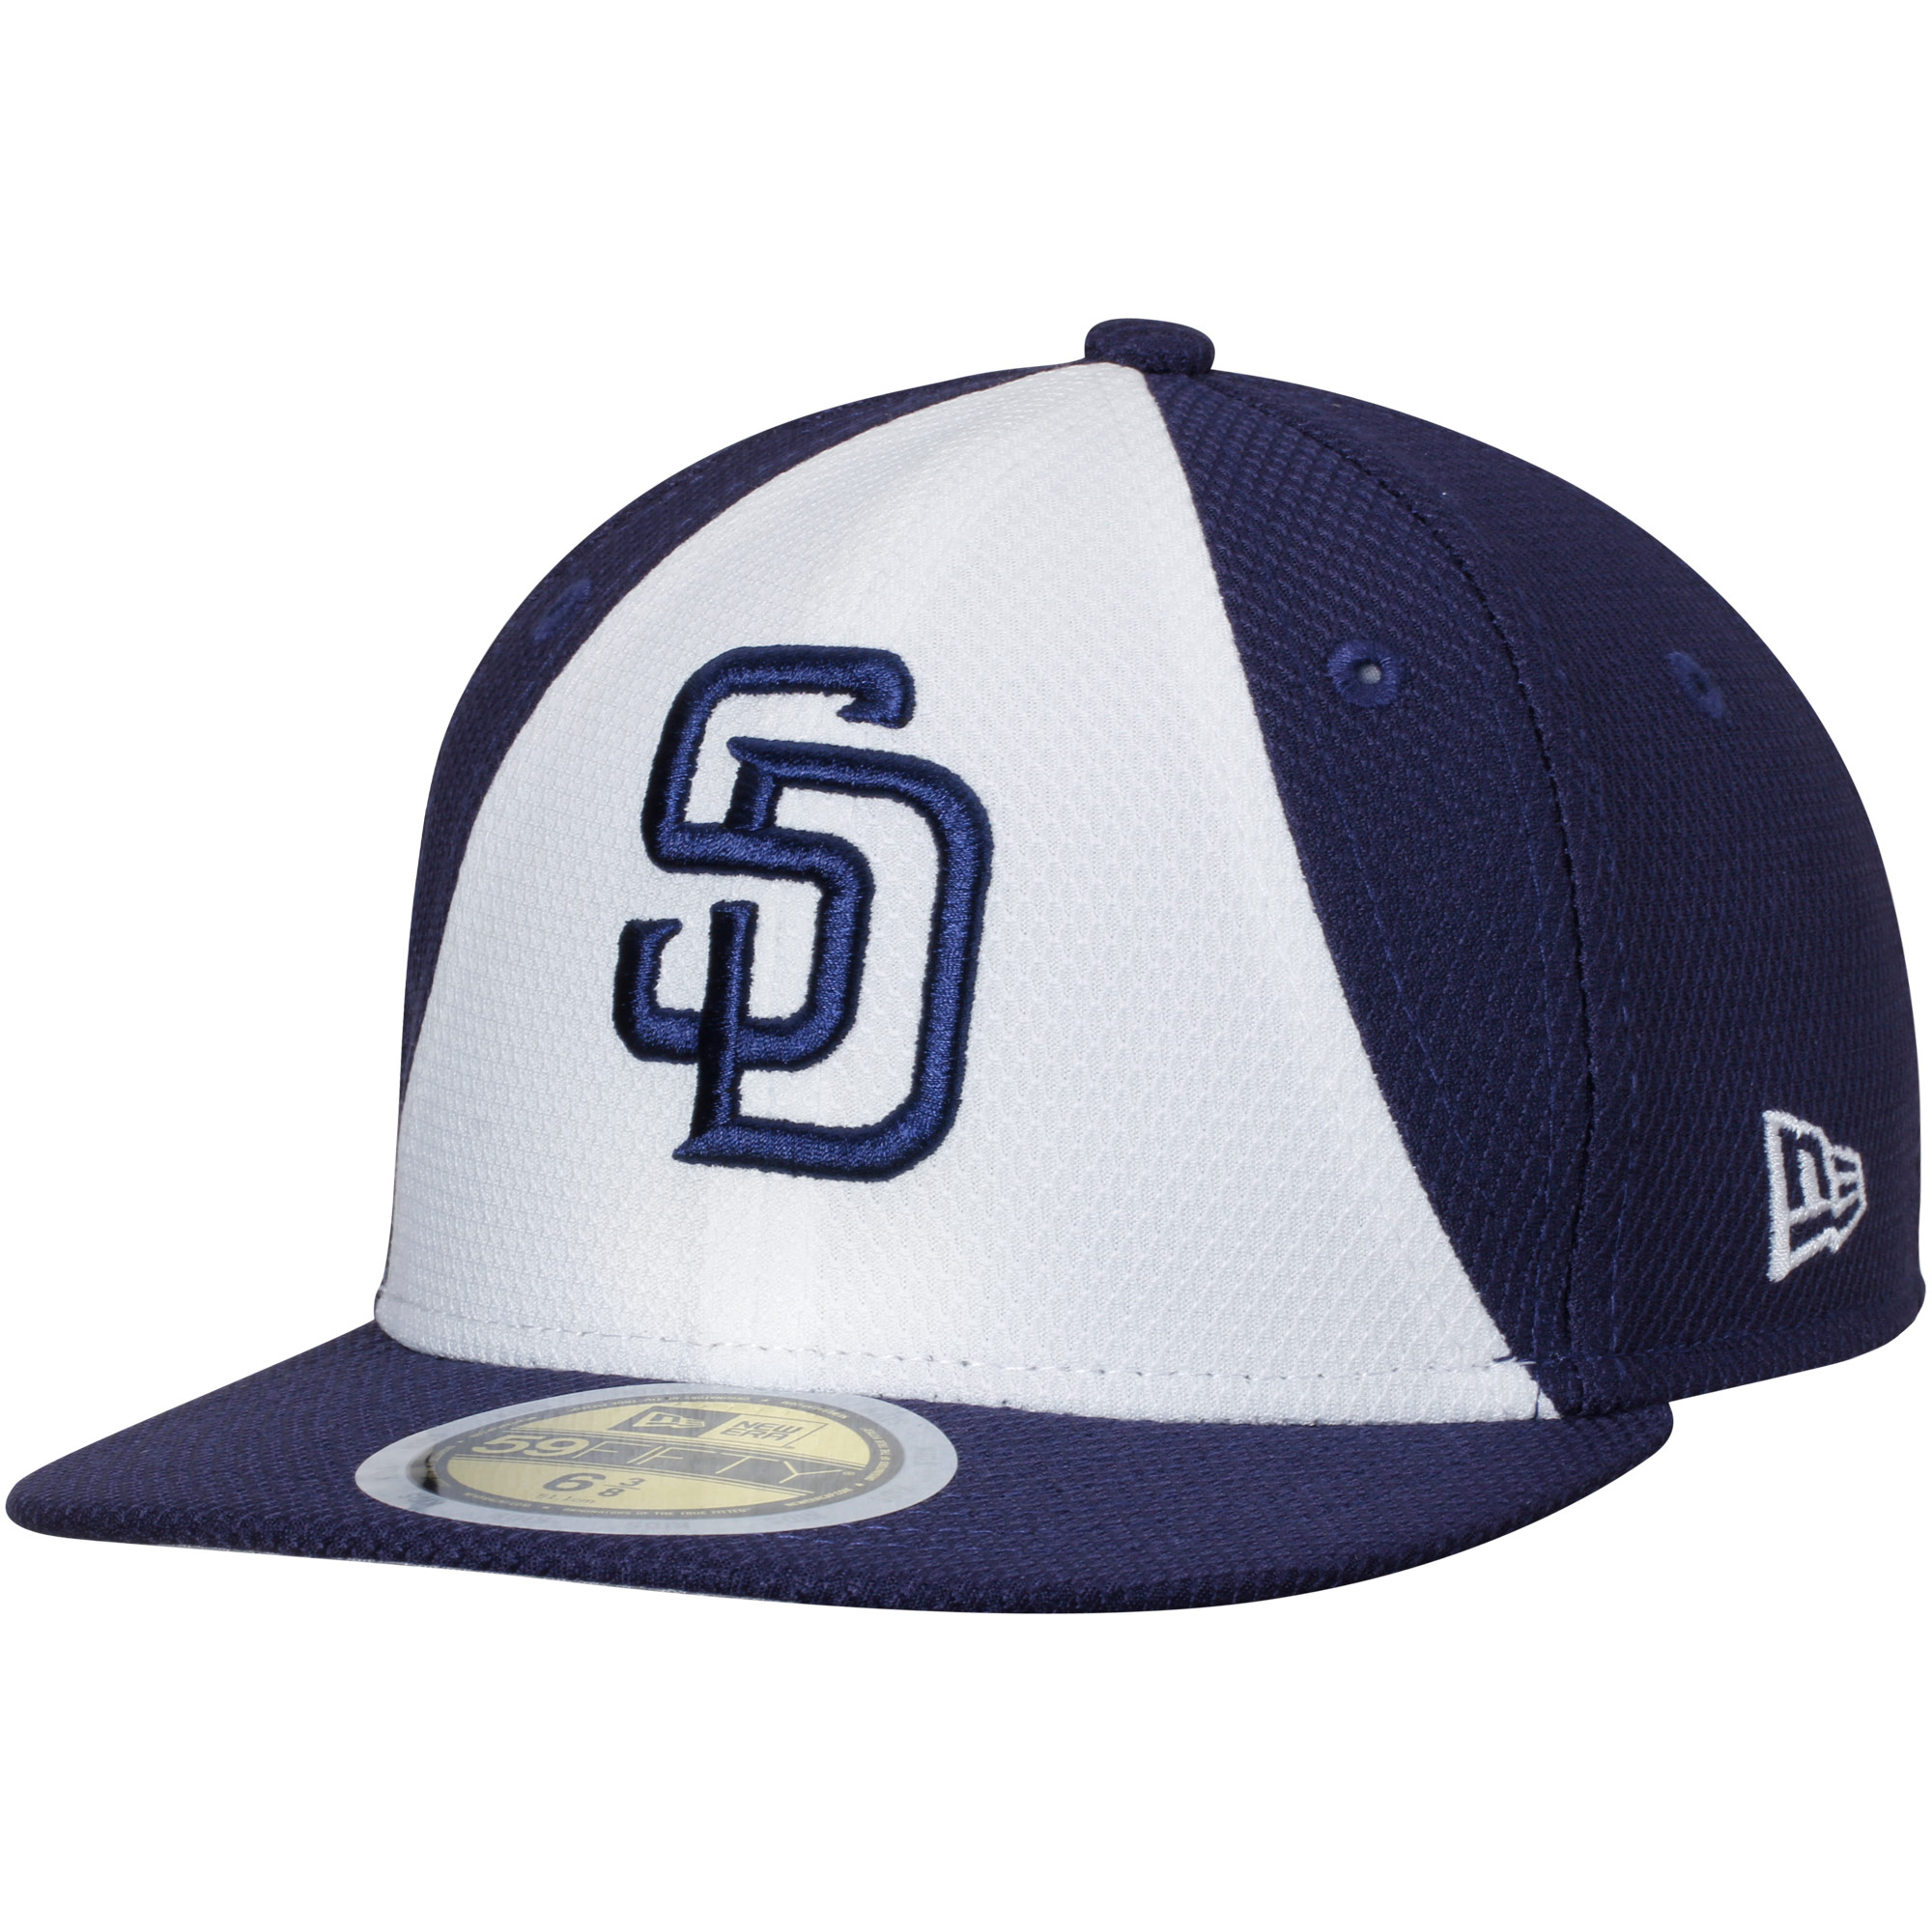 San Diego Padres New Era Youth Diamond Era 59FIFTY Fitted Hat - White/Navy